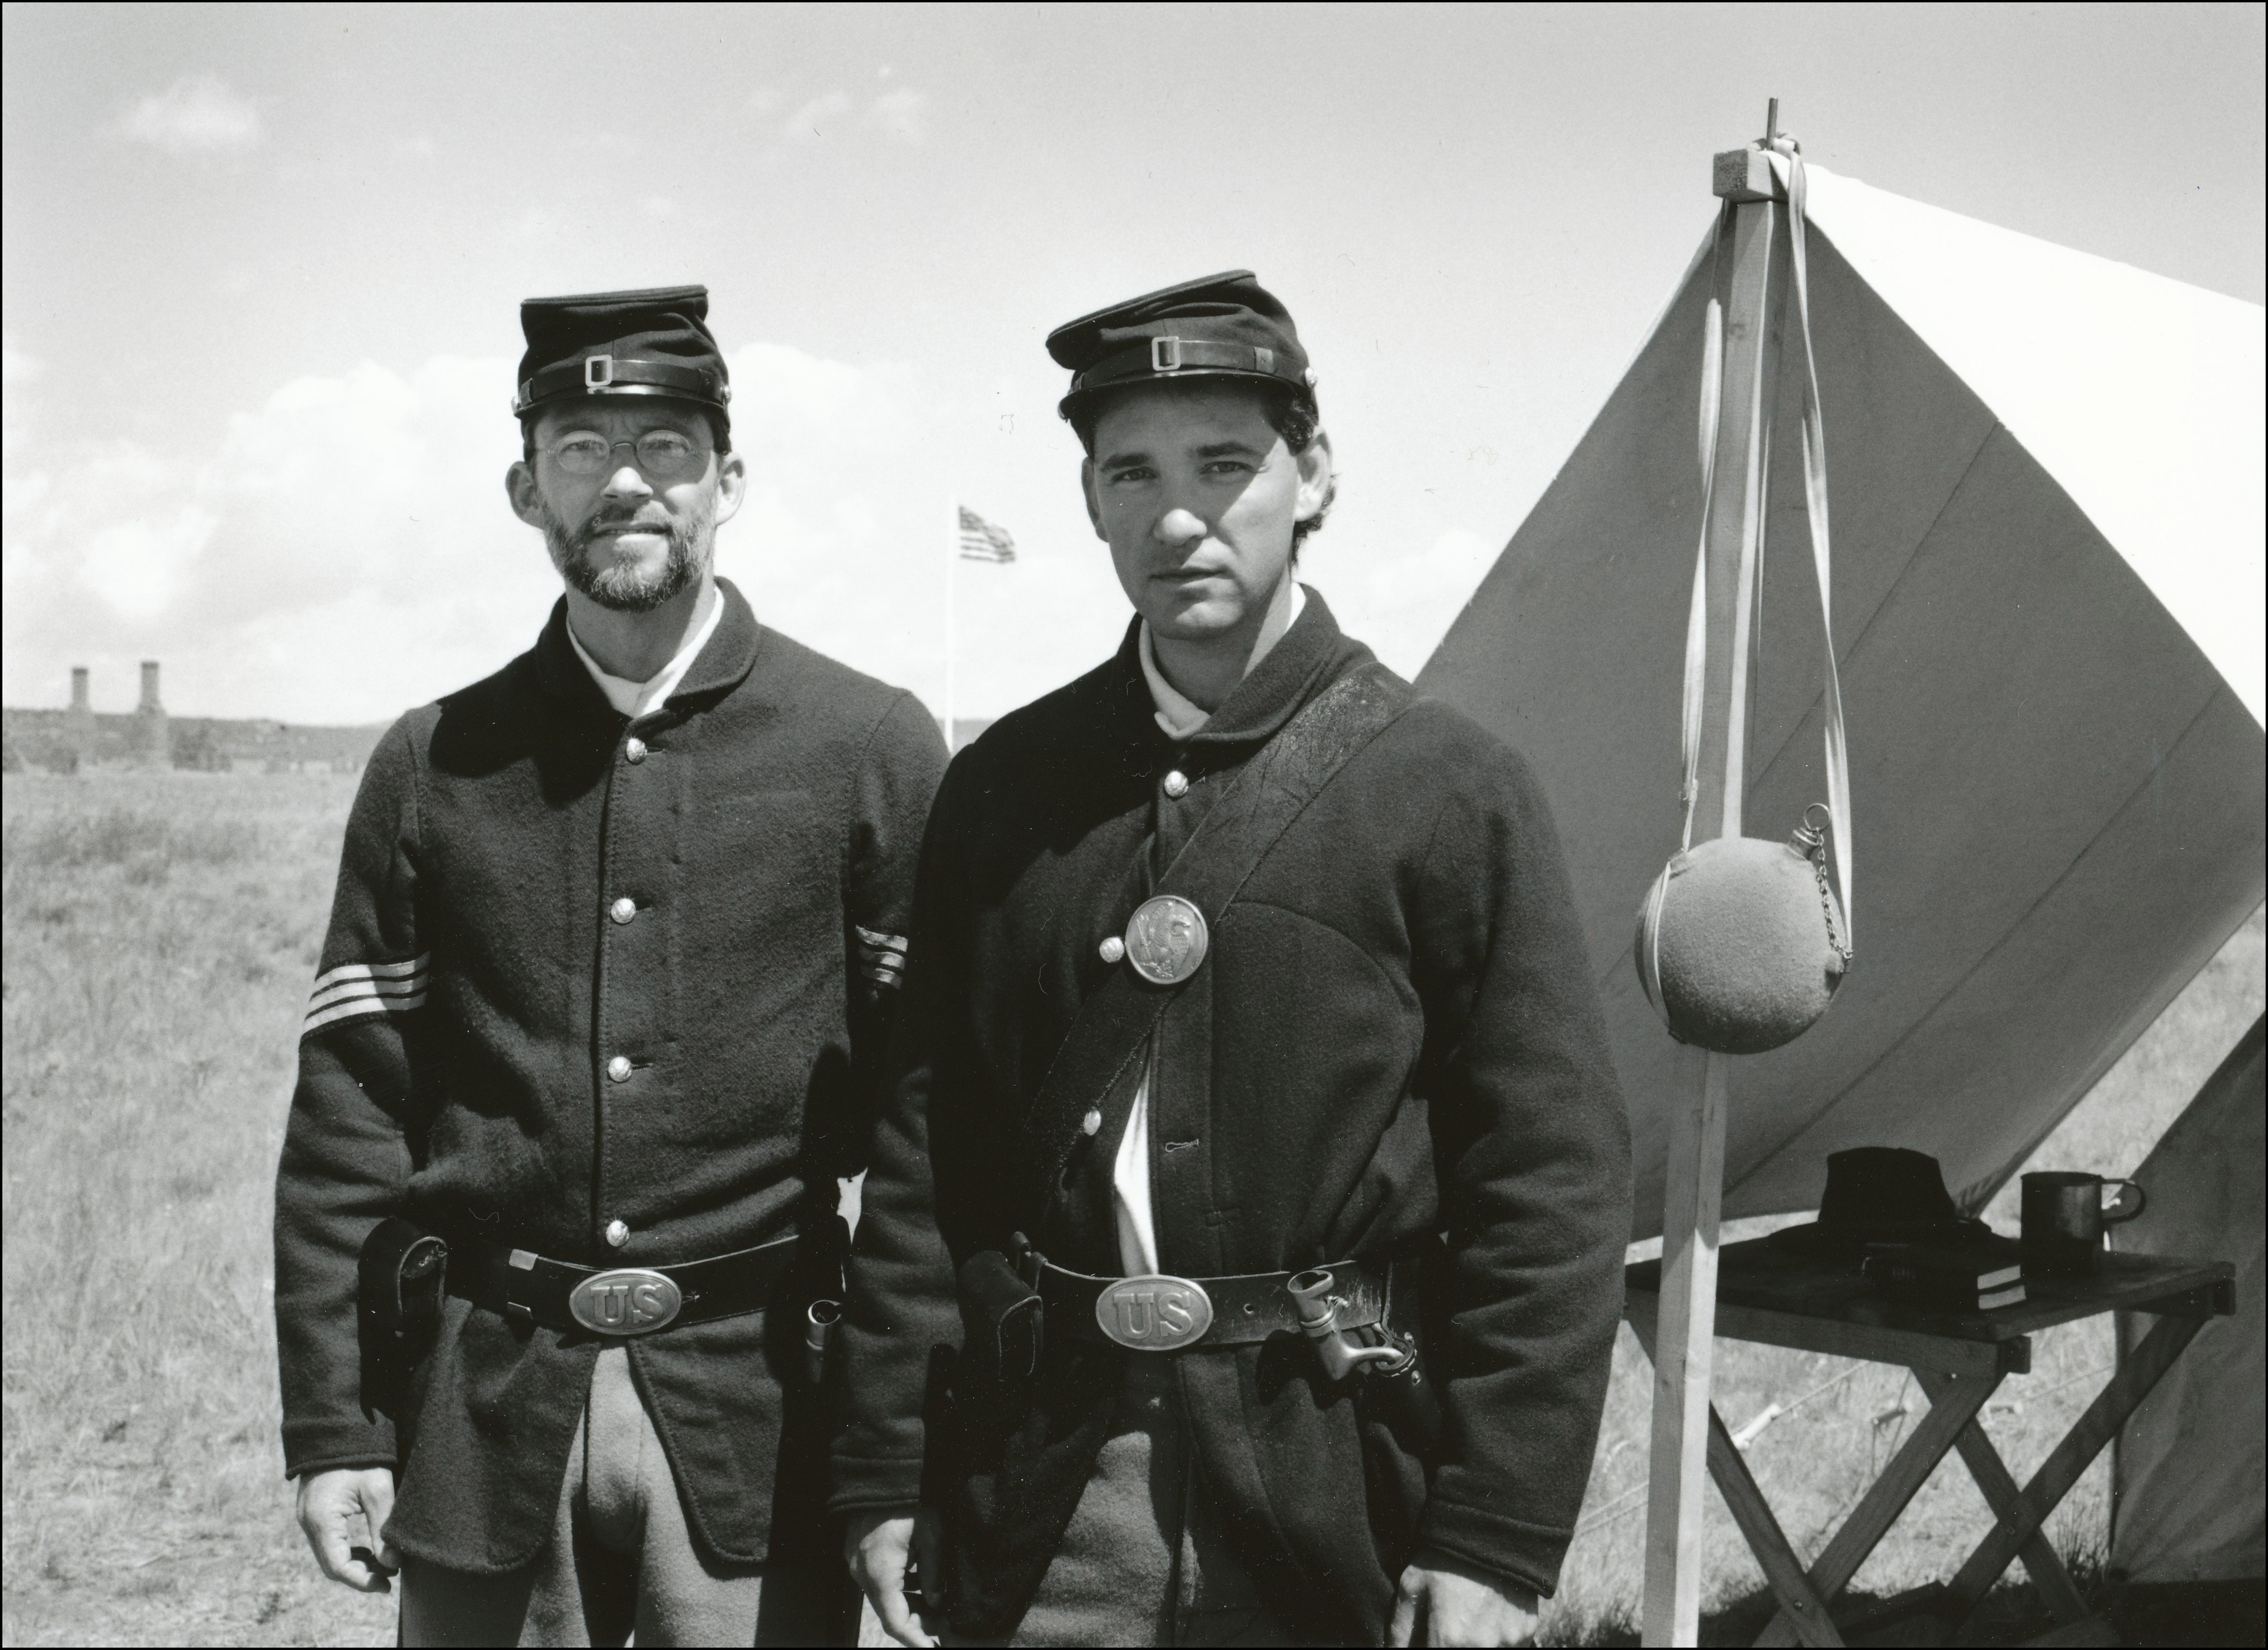 Two men dressed up as soldiers in front of old tent at an old fort